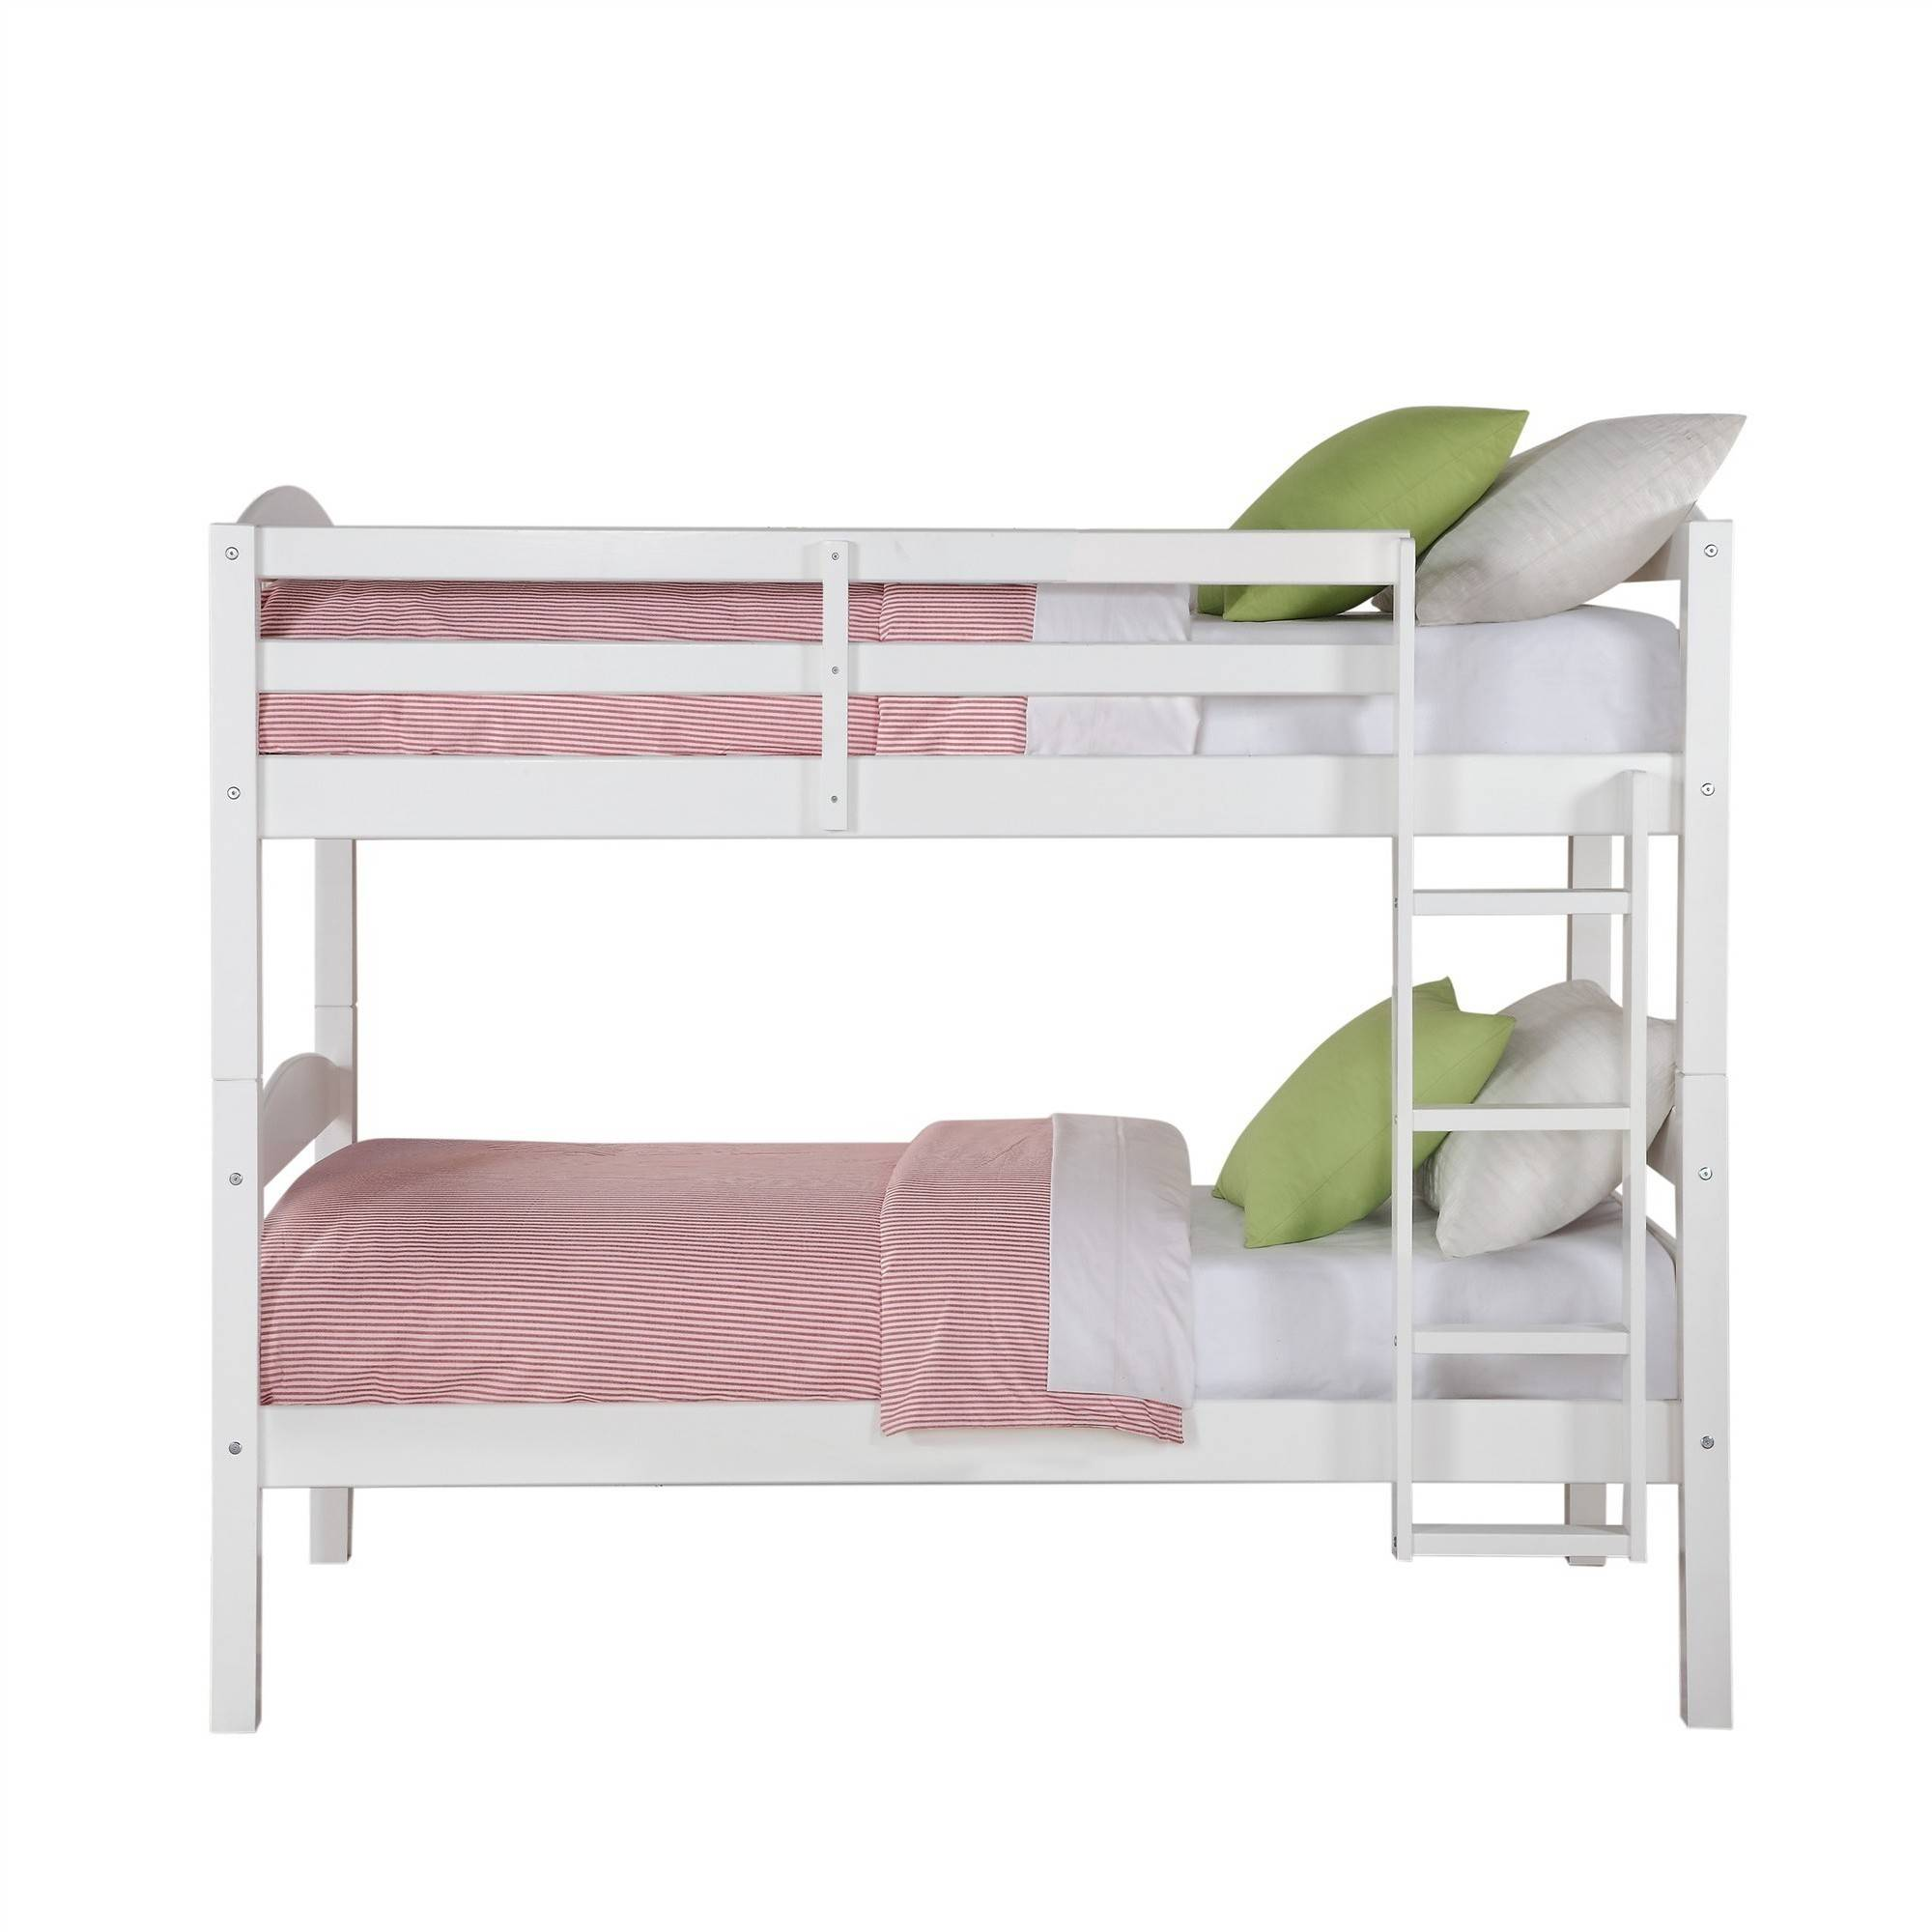 twin size bunk bed convertible wood ladder white finish kids bedroom furniture ebay. Black Bedroom Furniture Sets. Home Design Ideas